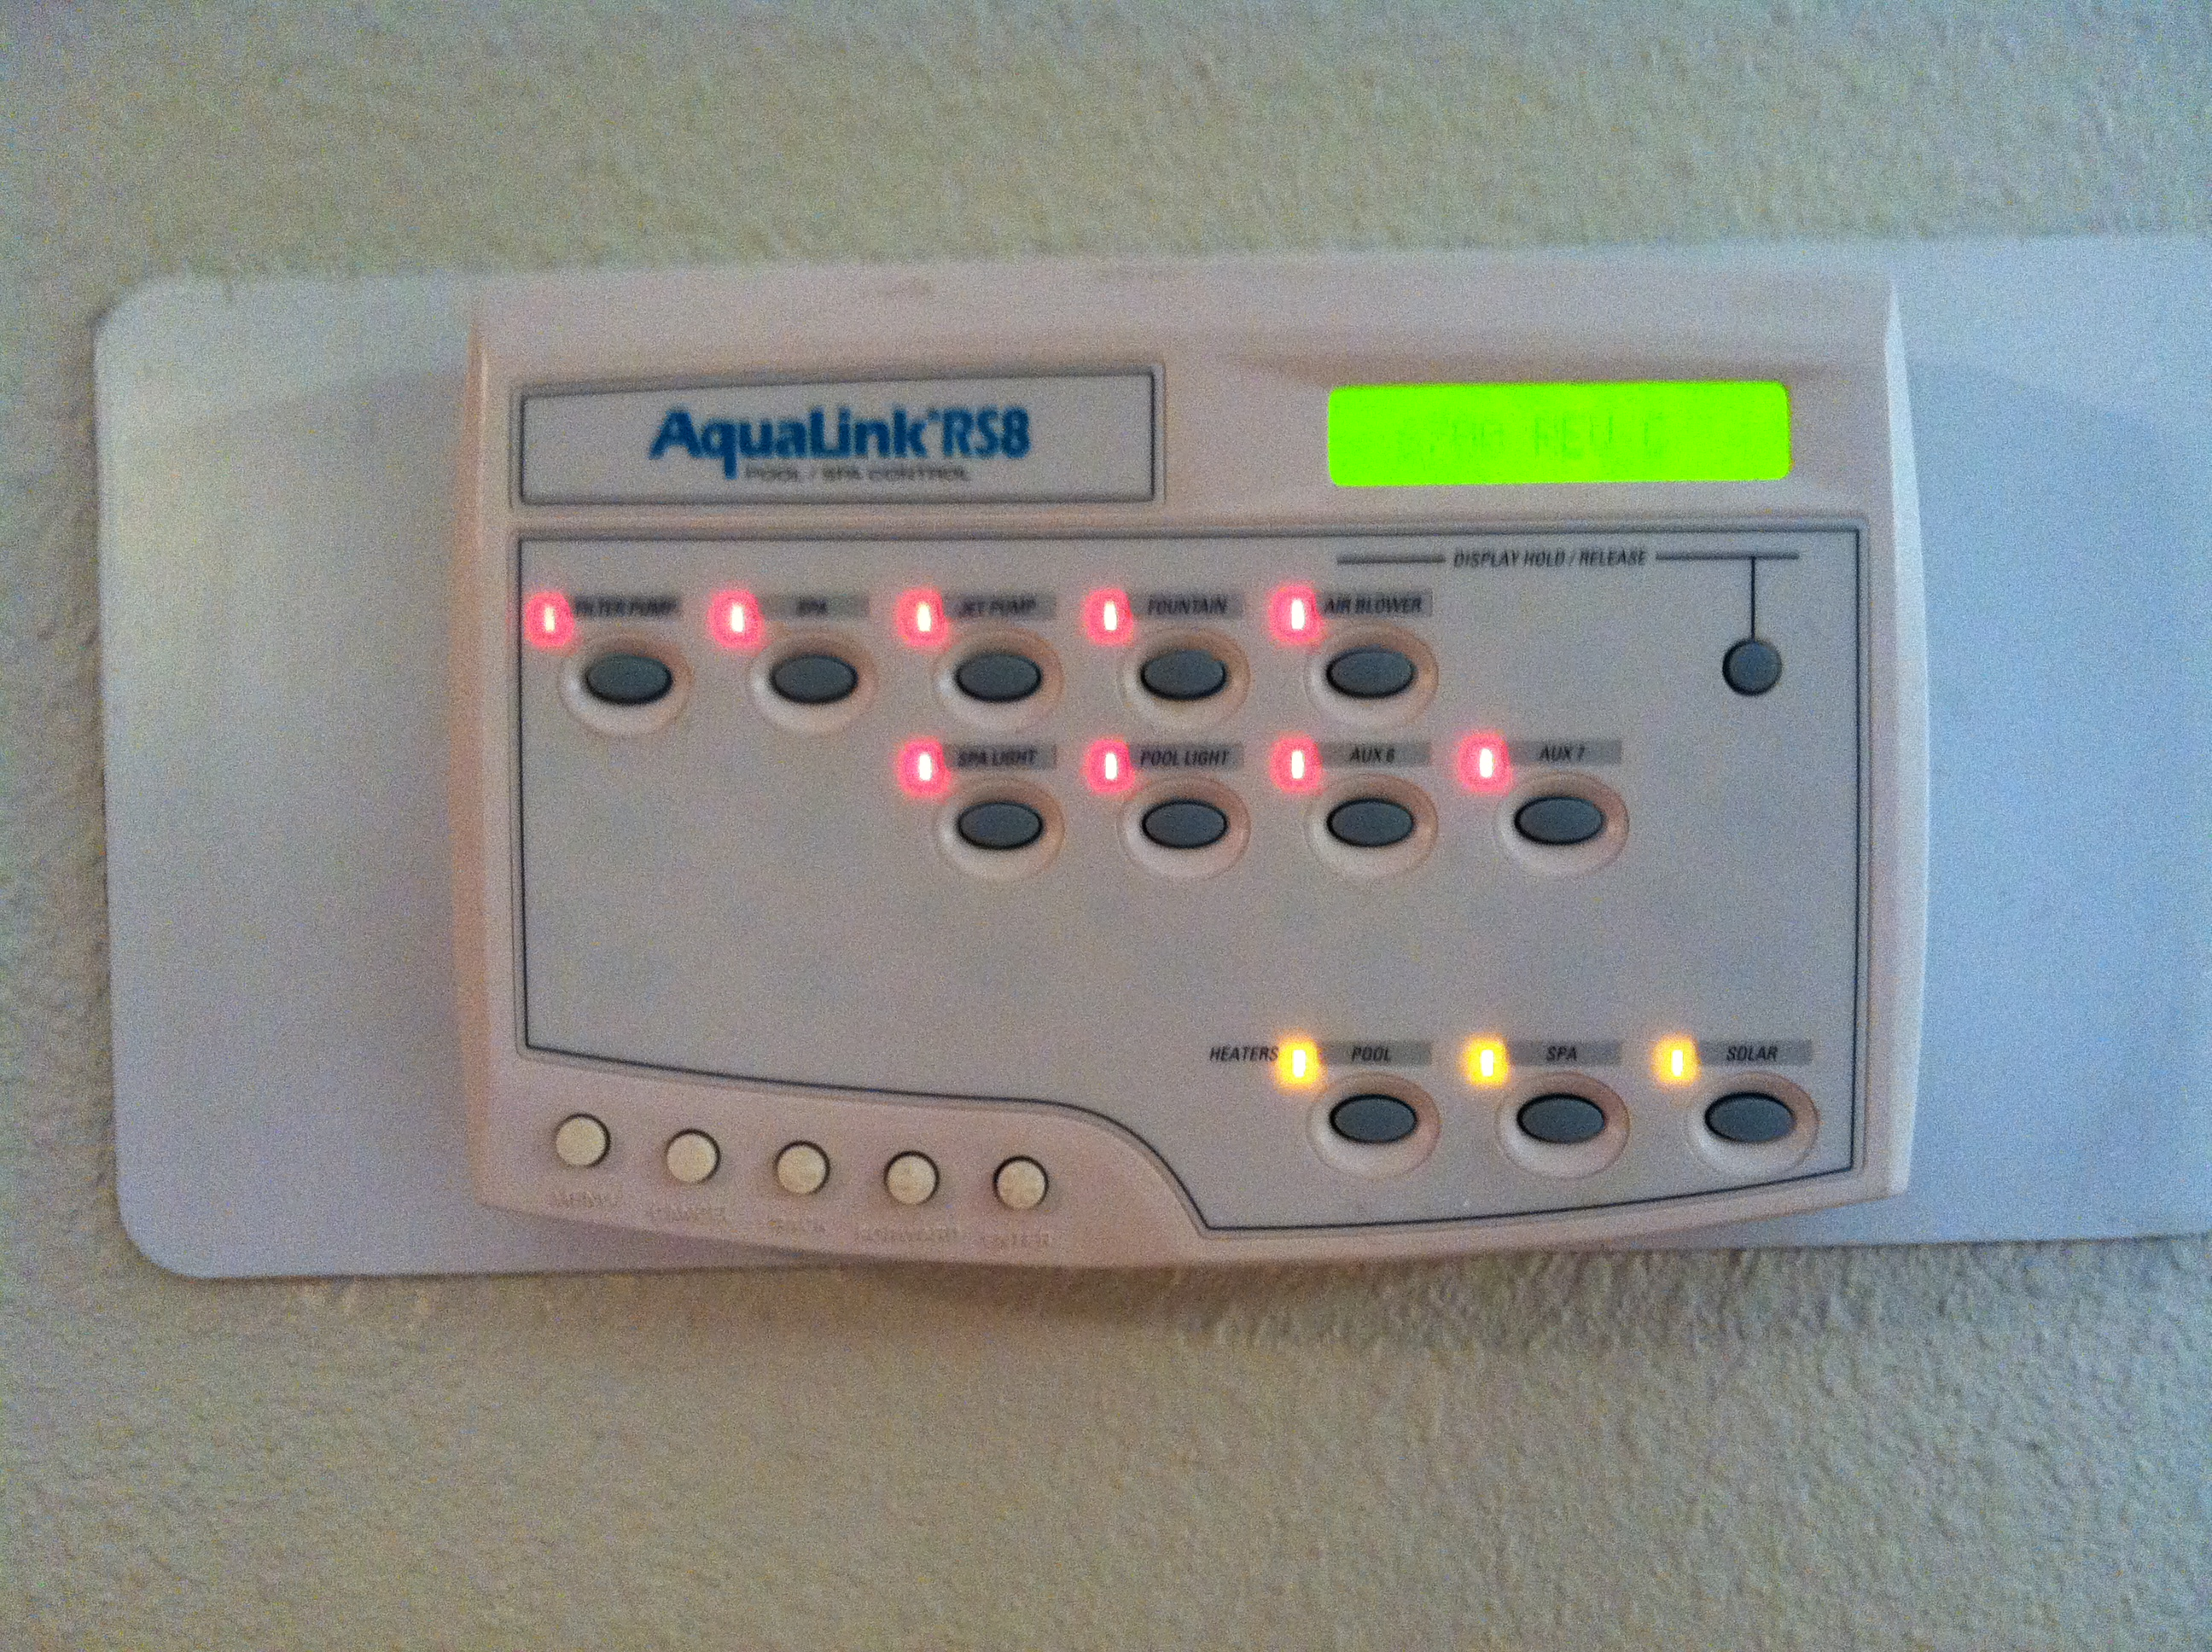 2012 04 06_160114_img_45931 aqualink rs pool control center not communicating with main box wiring diagram for aqualink rs at bayanpartner.co